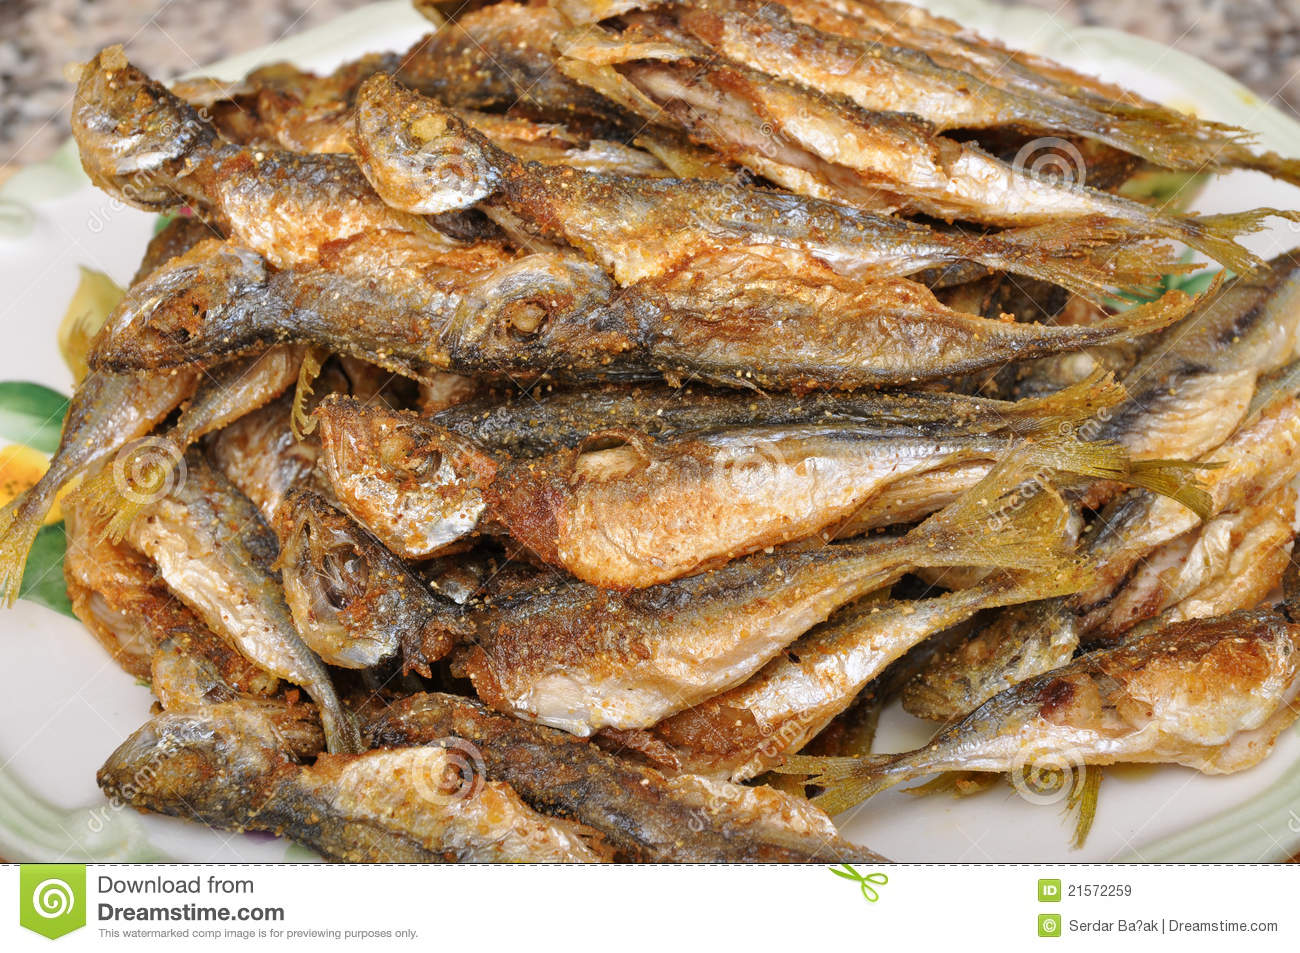 Fried fish stock image image of foods delicious fried for Fried fish calories